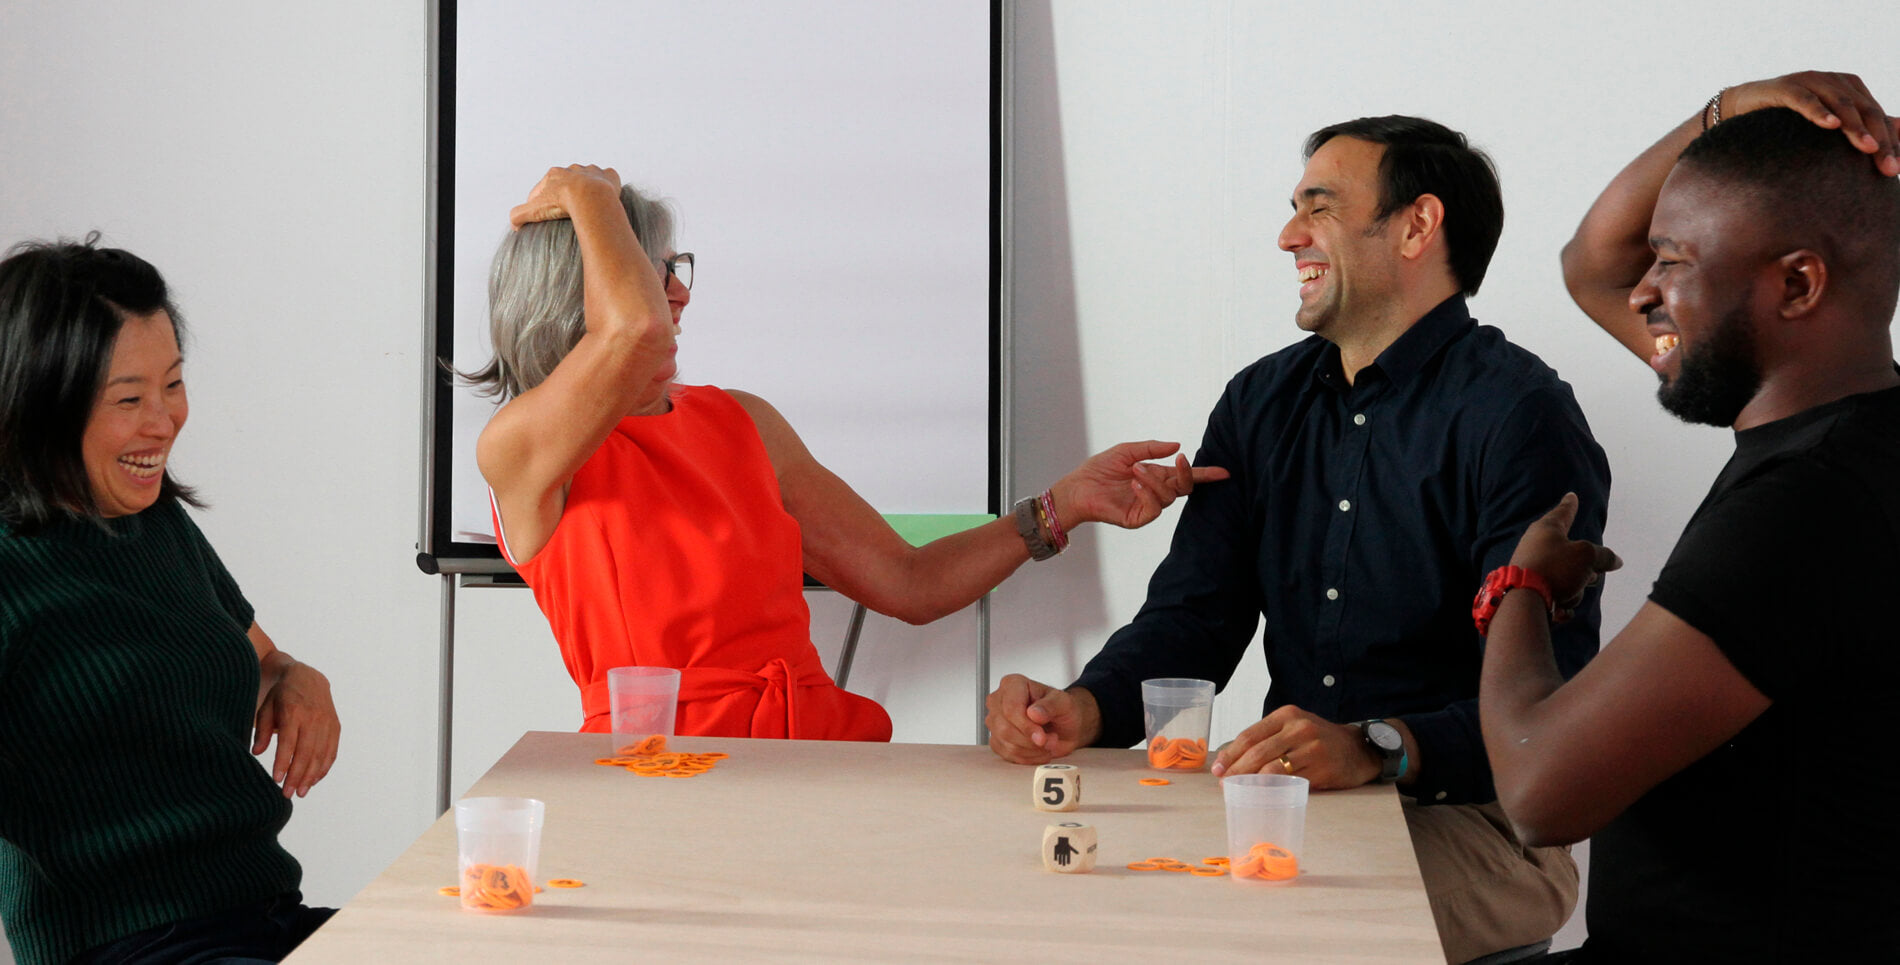 An illustration of people playing SysTeam, a popular hands on team building activity from Metalog Training Tools